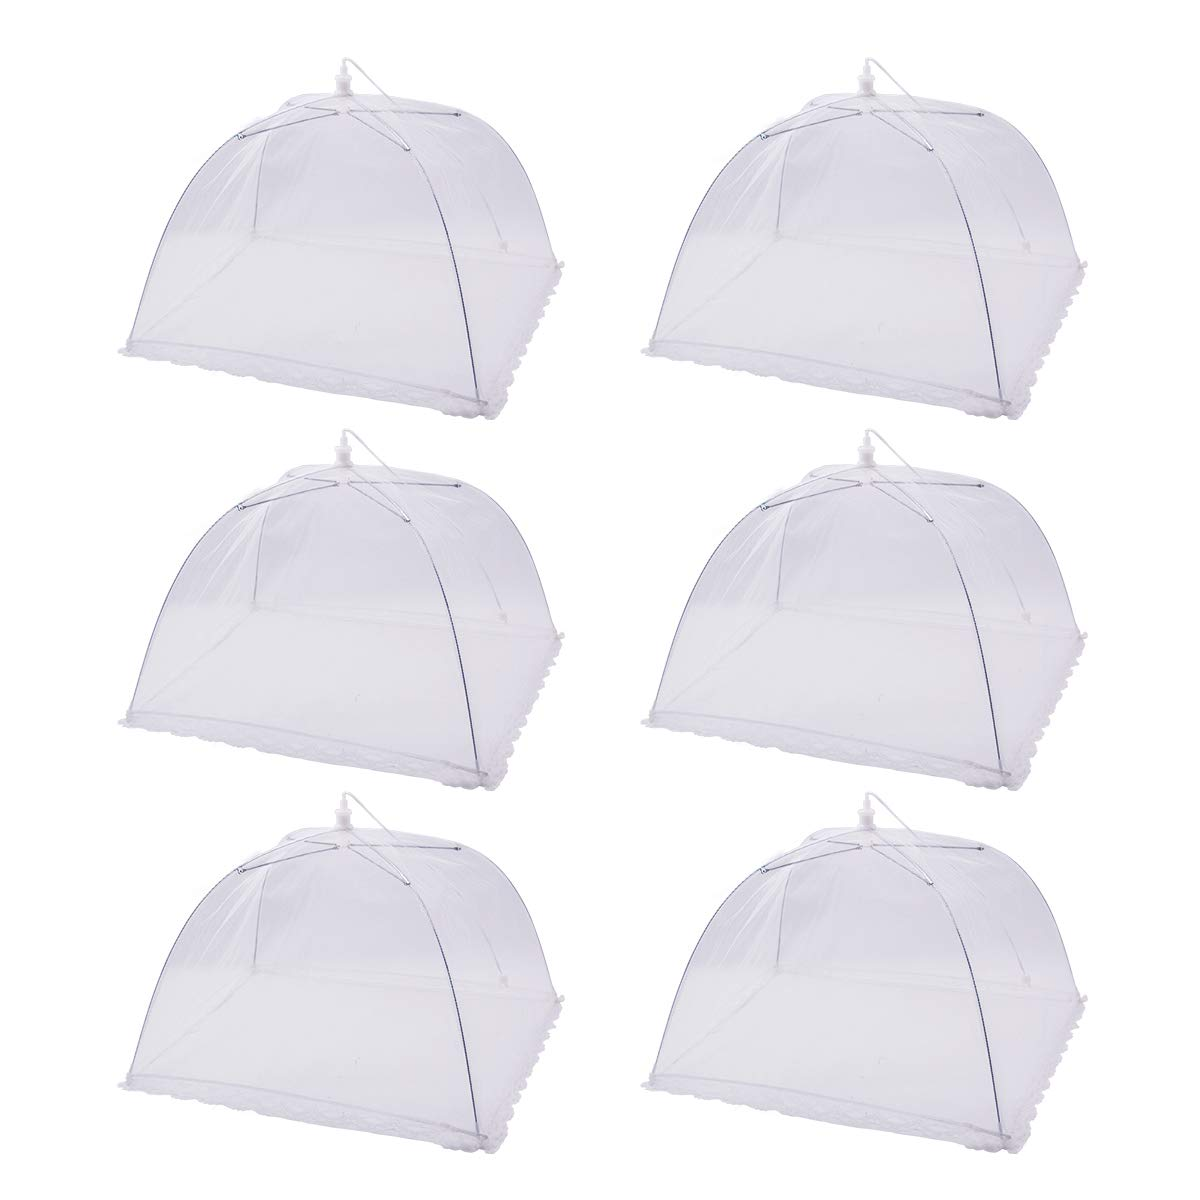 Pop-Up Mesh Food Covers Tent Umbrella For Outdoors Food Cover Net Keep Out Flies Bugs Mosquitoes Ideal for Parties Picnics BBQ Reusable And Collapsible 17 x 17 Inches(6 Pack)